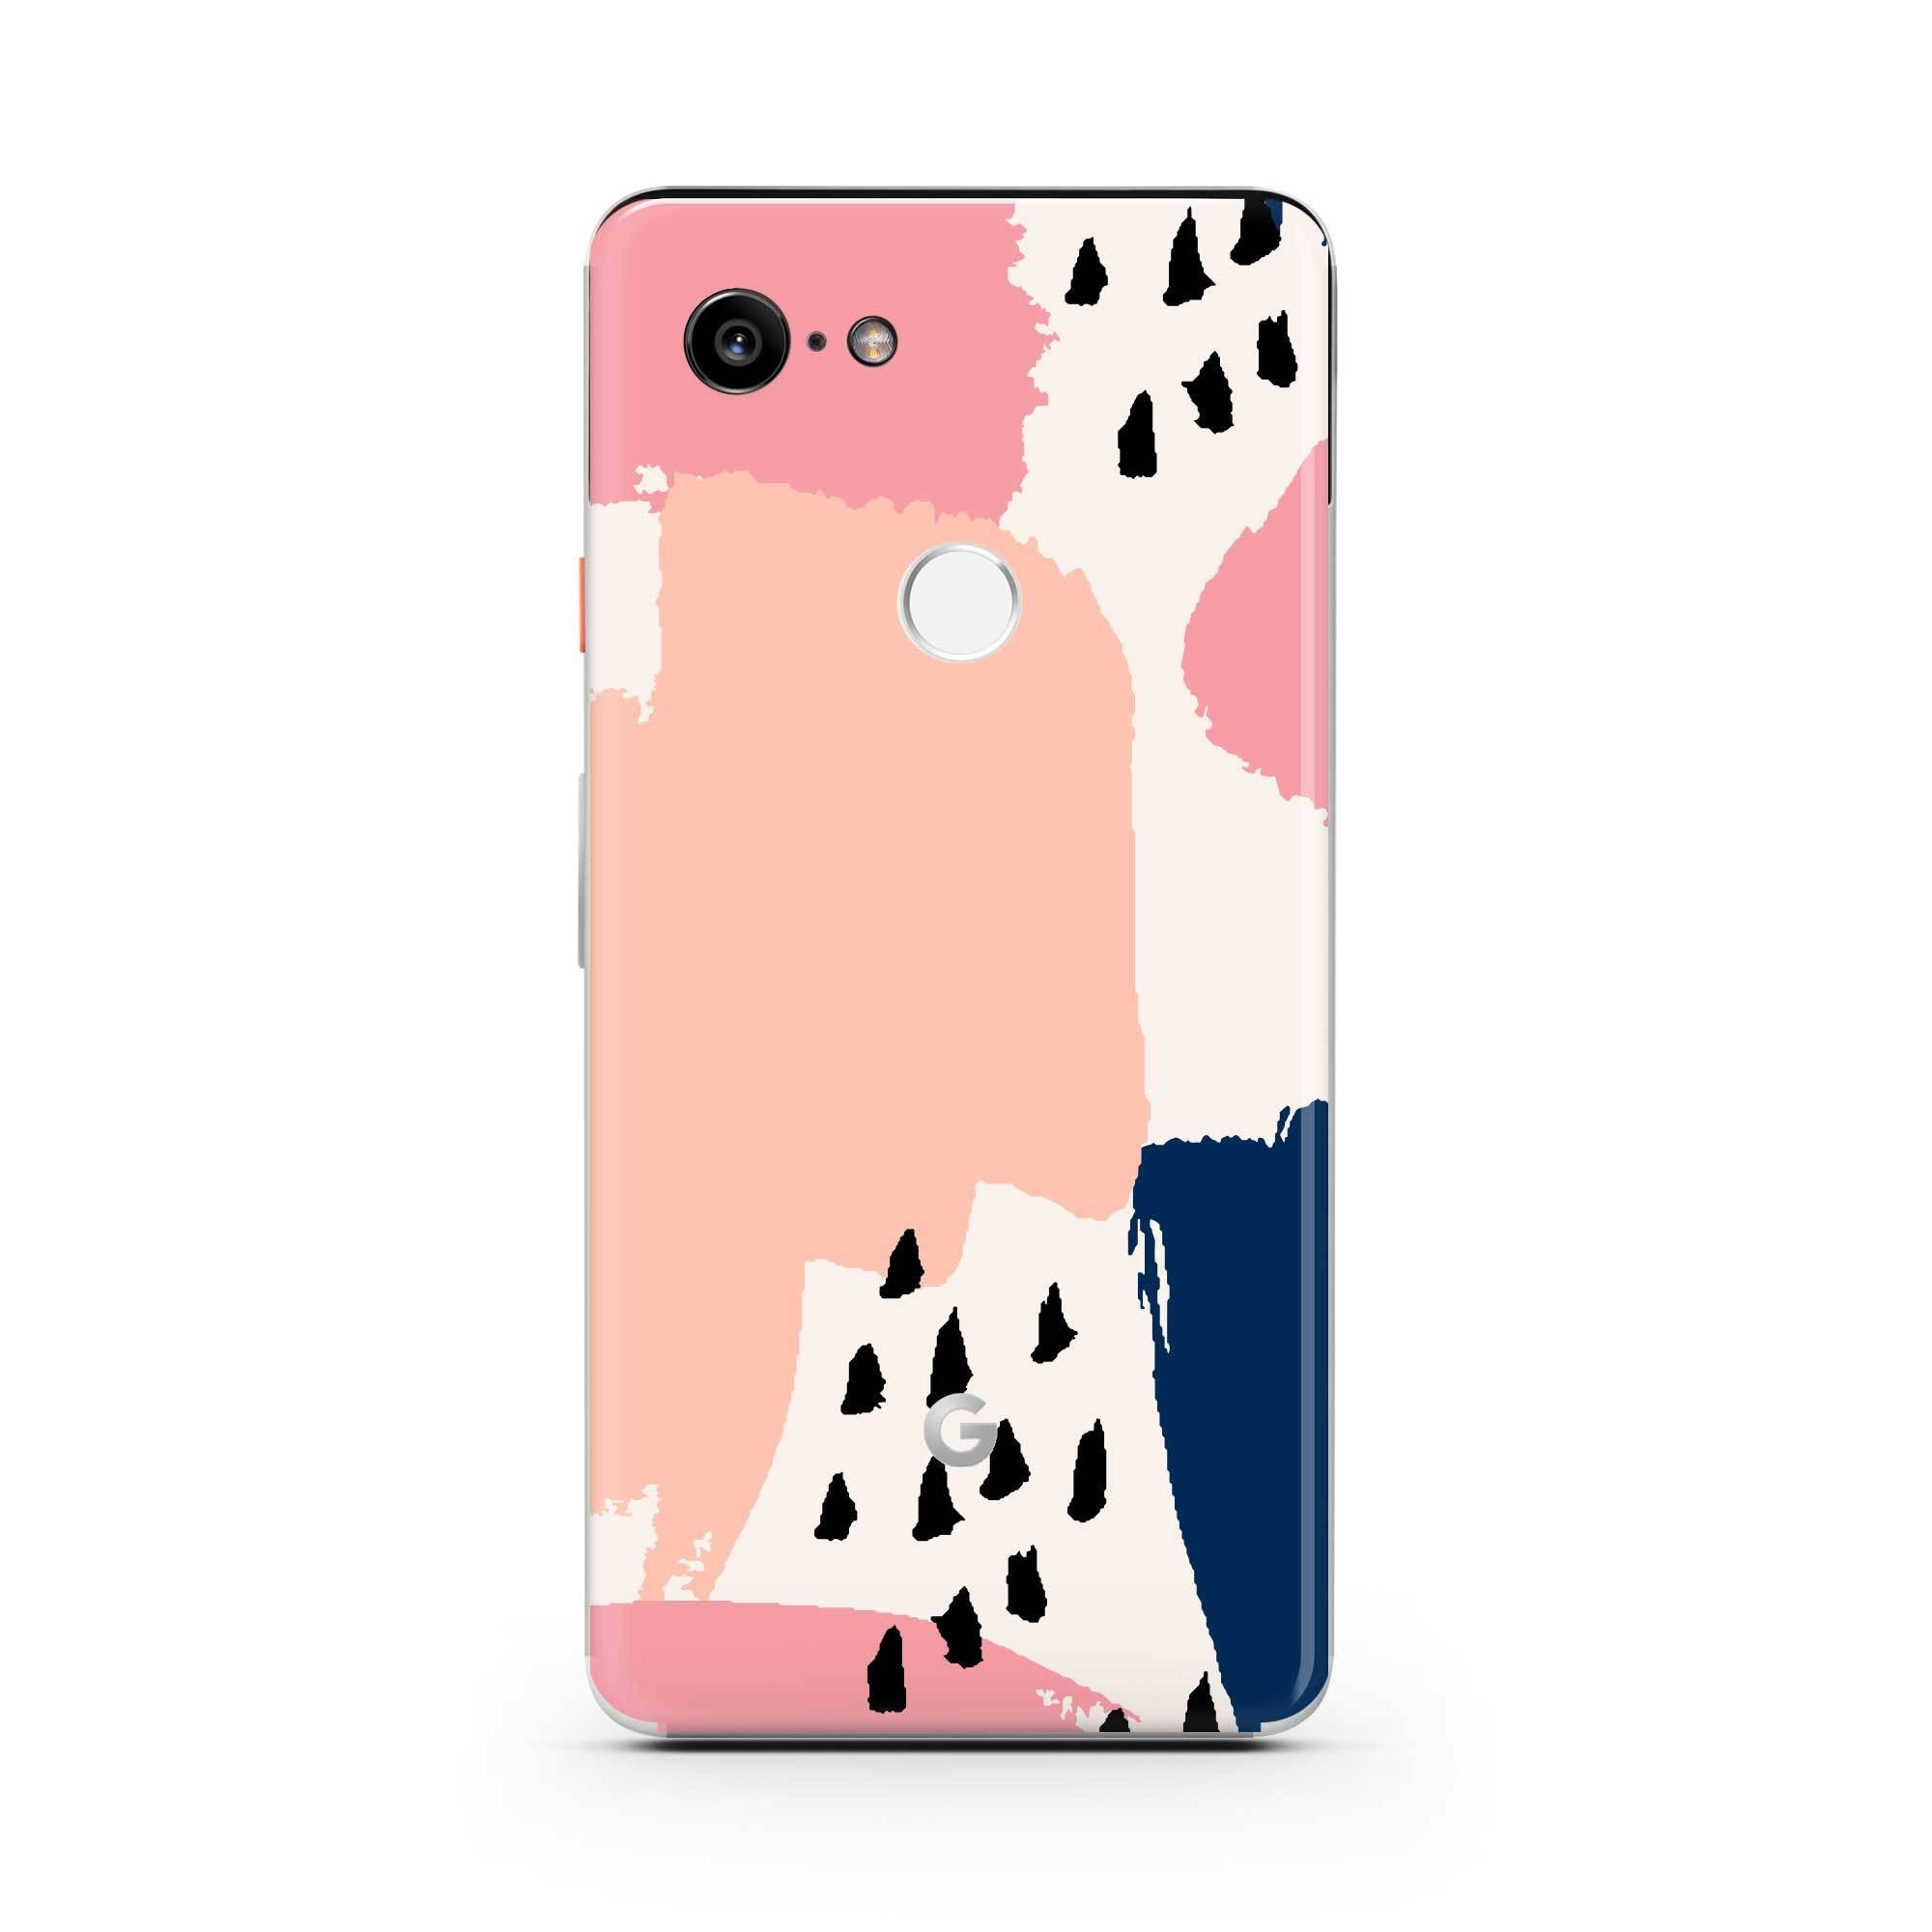 Miami Vice Pixel 3a XL Skin + Case